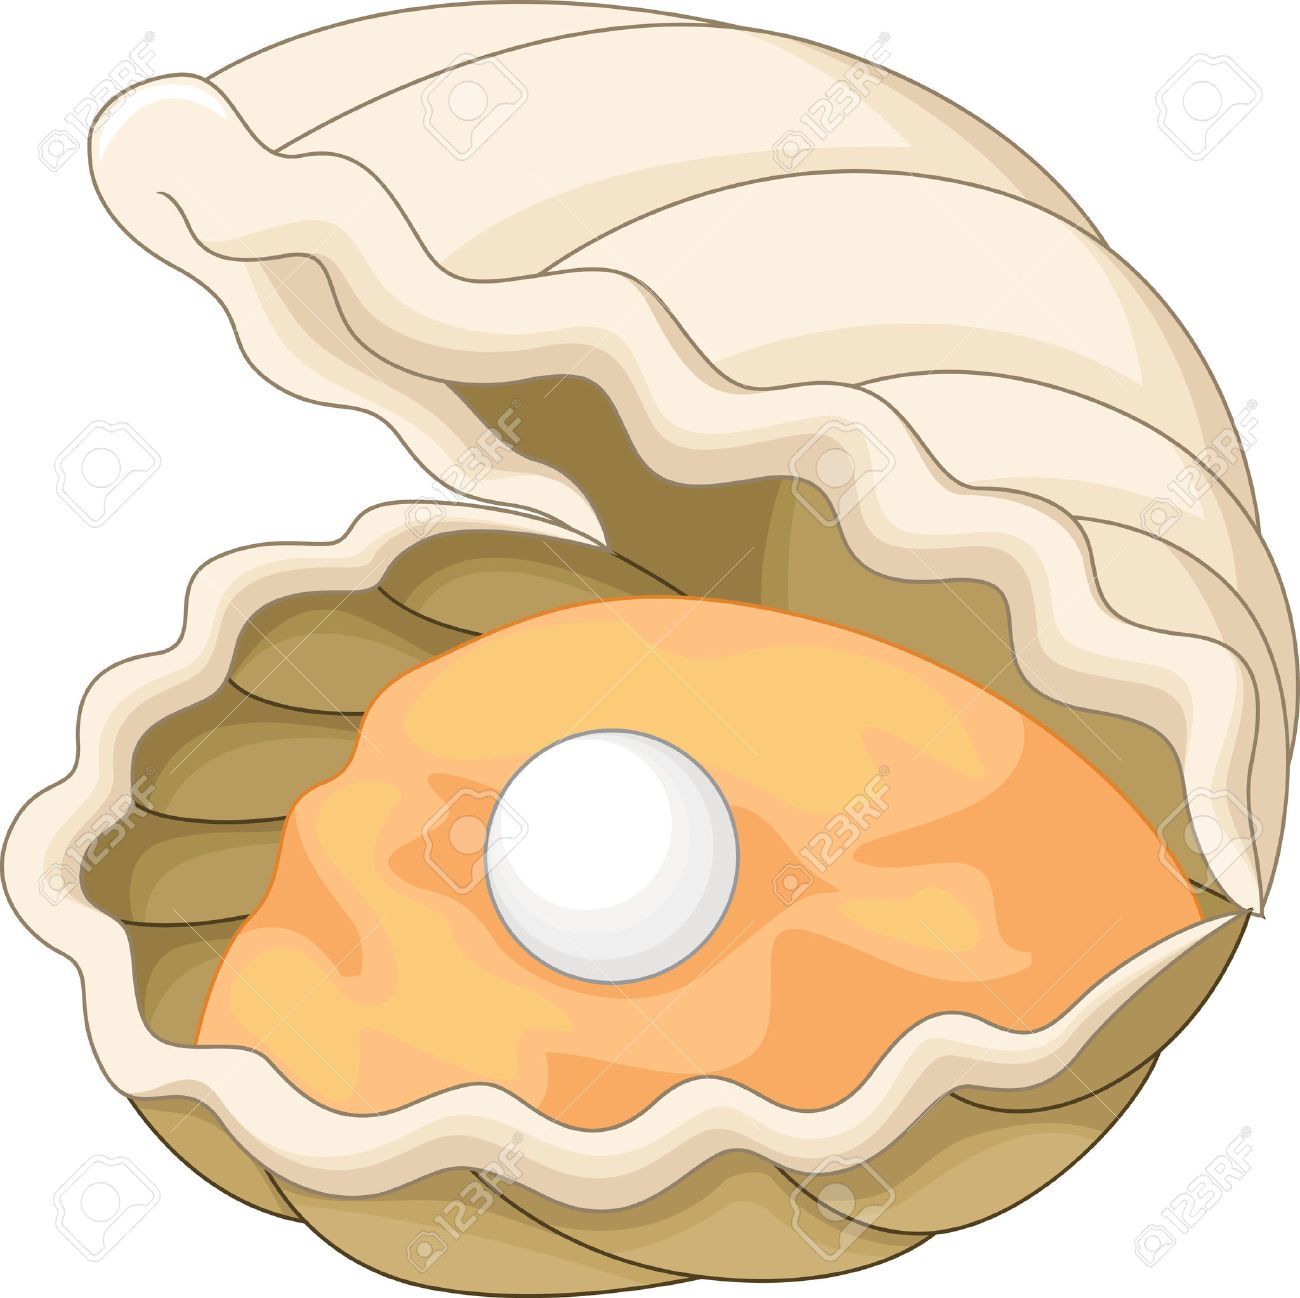 Cartoon Oyster with a pearl.